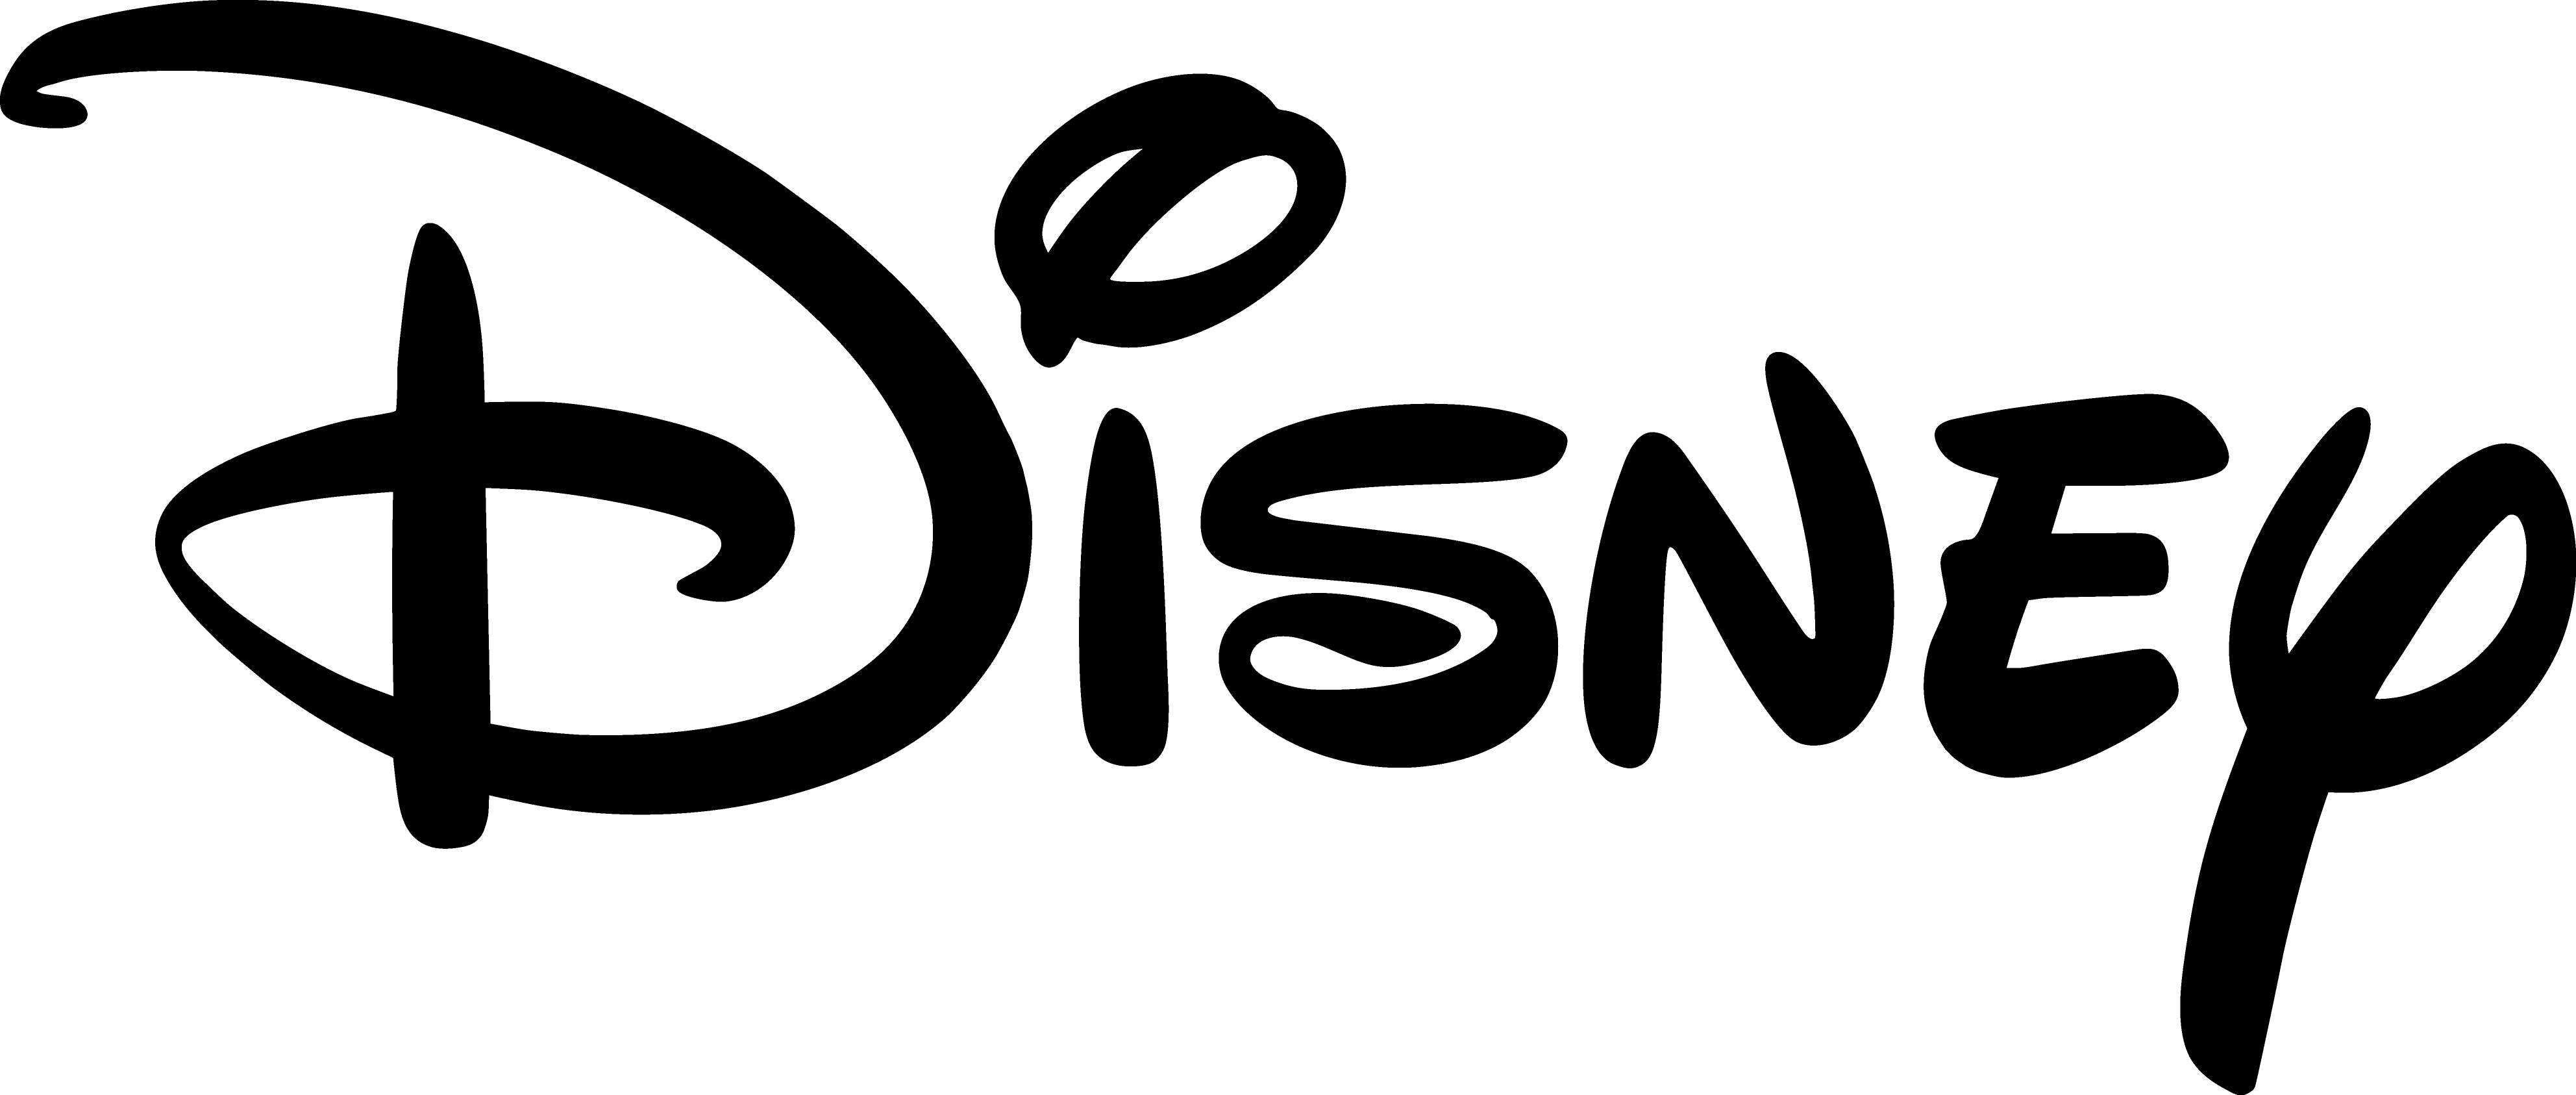 Disney Logo - Disney-logo-vector-2 | BL Lighting